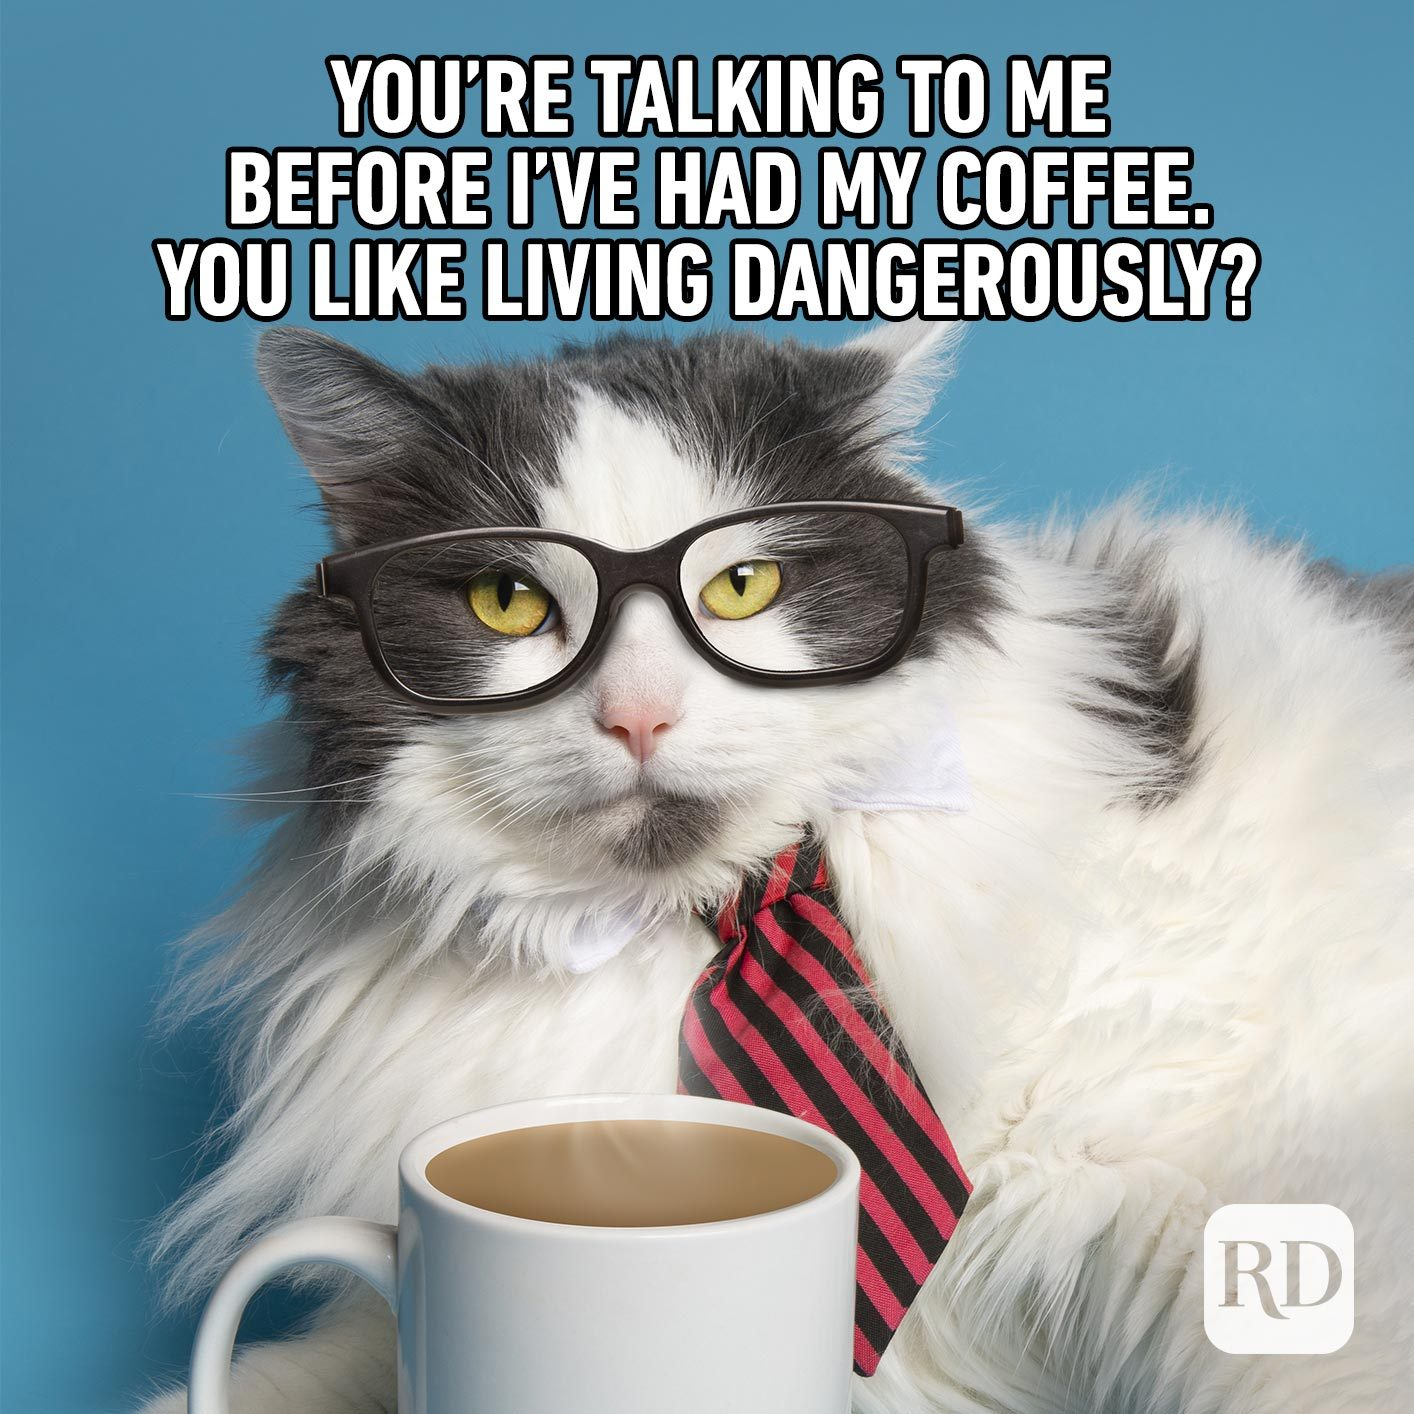 Image of cat in business attire drinking coffee. Meme text: You're talking to me before I've had my coffee. You like living dangerously?